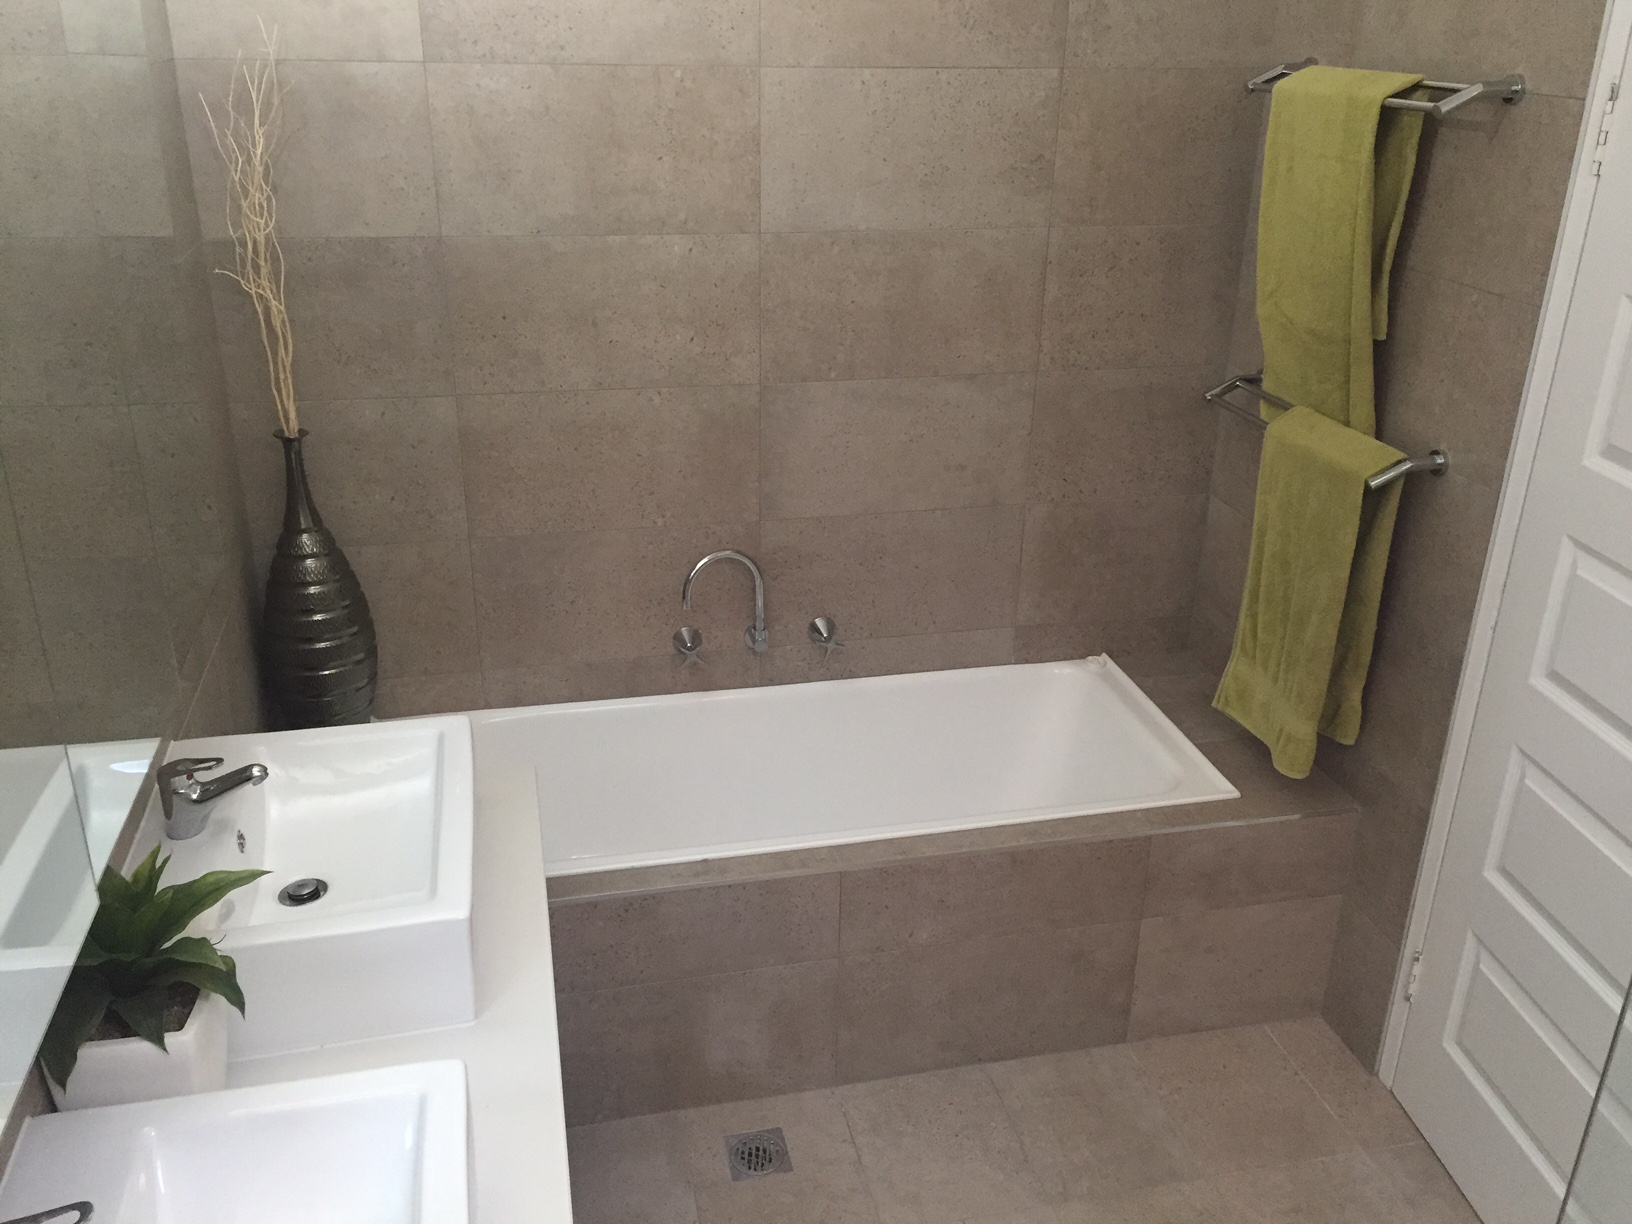 Natural stone look tiles, highlighted with white vanity and bath